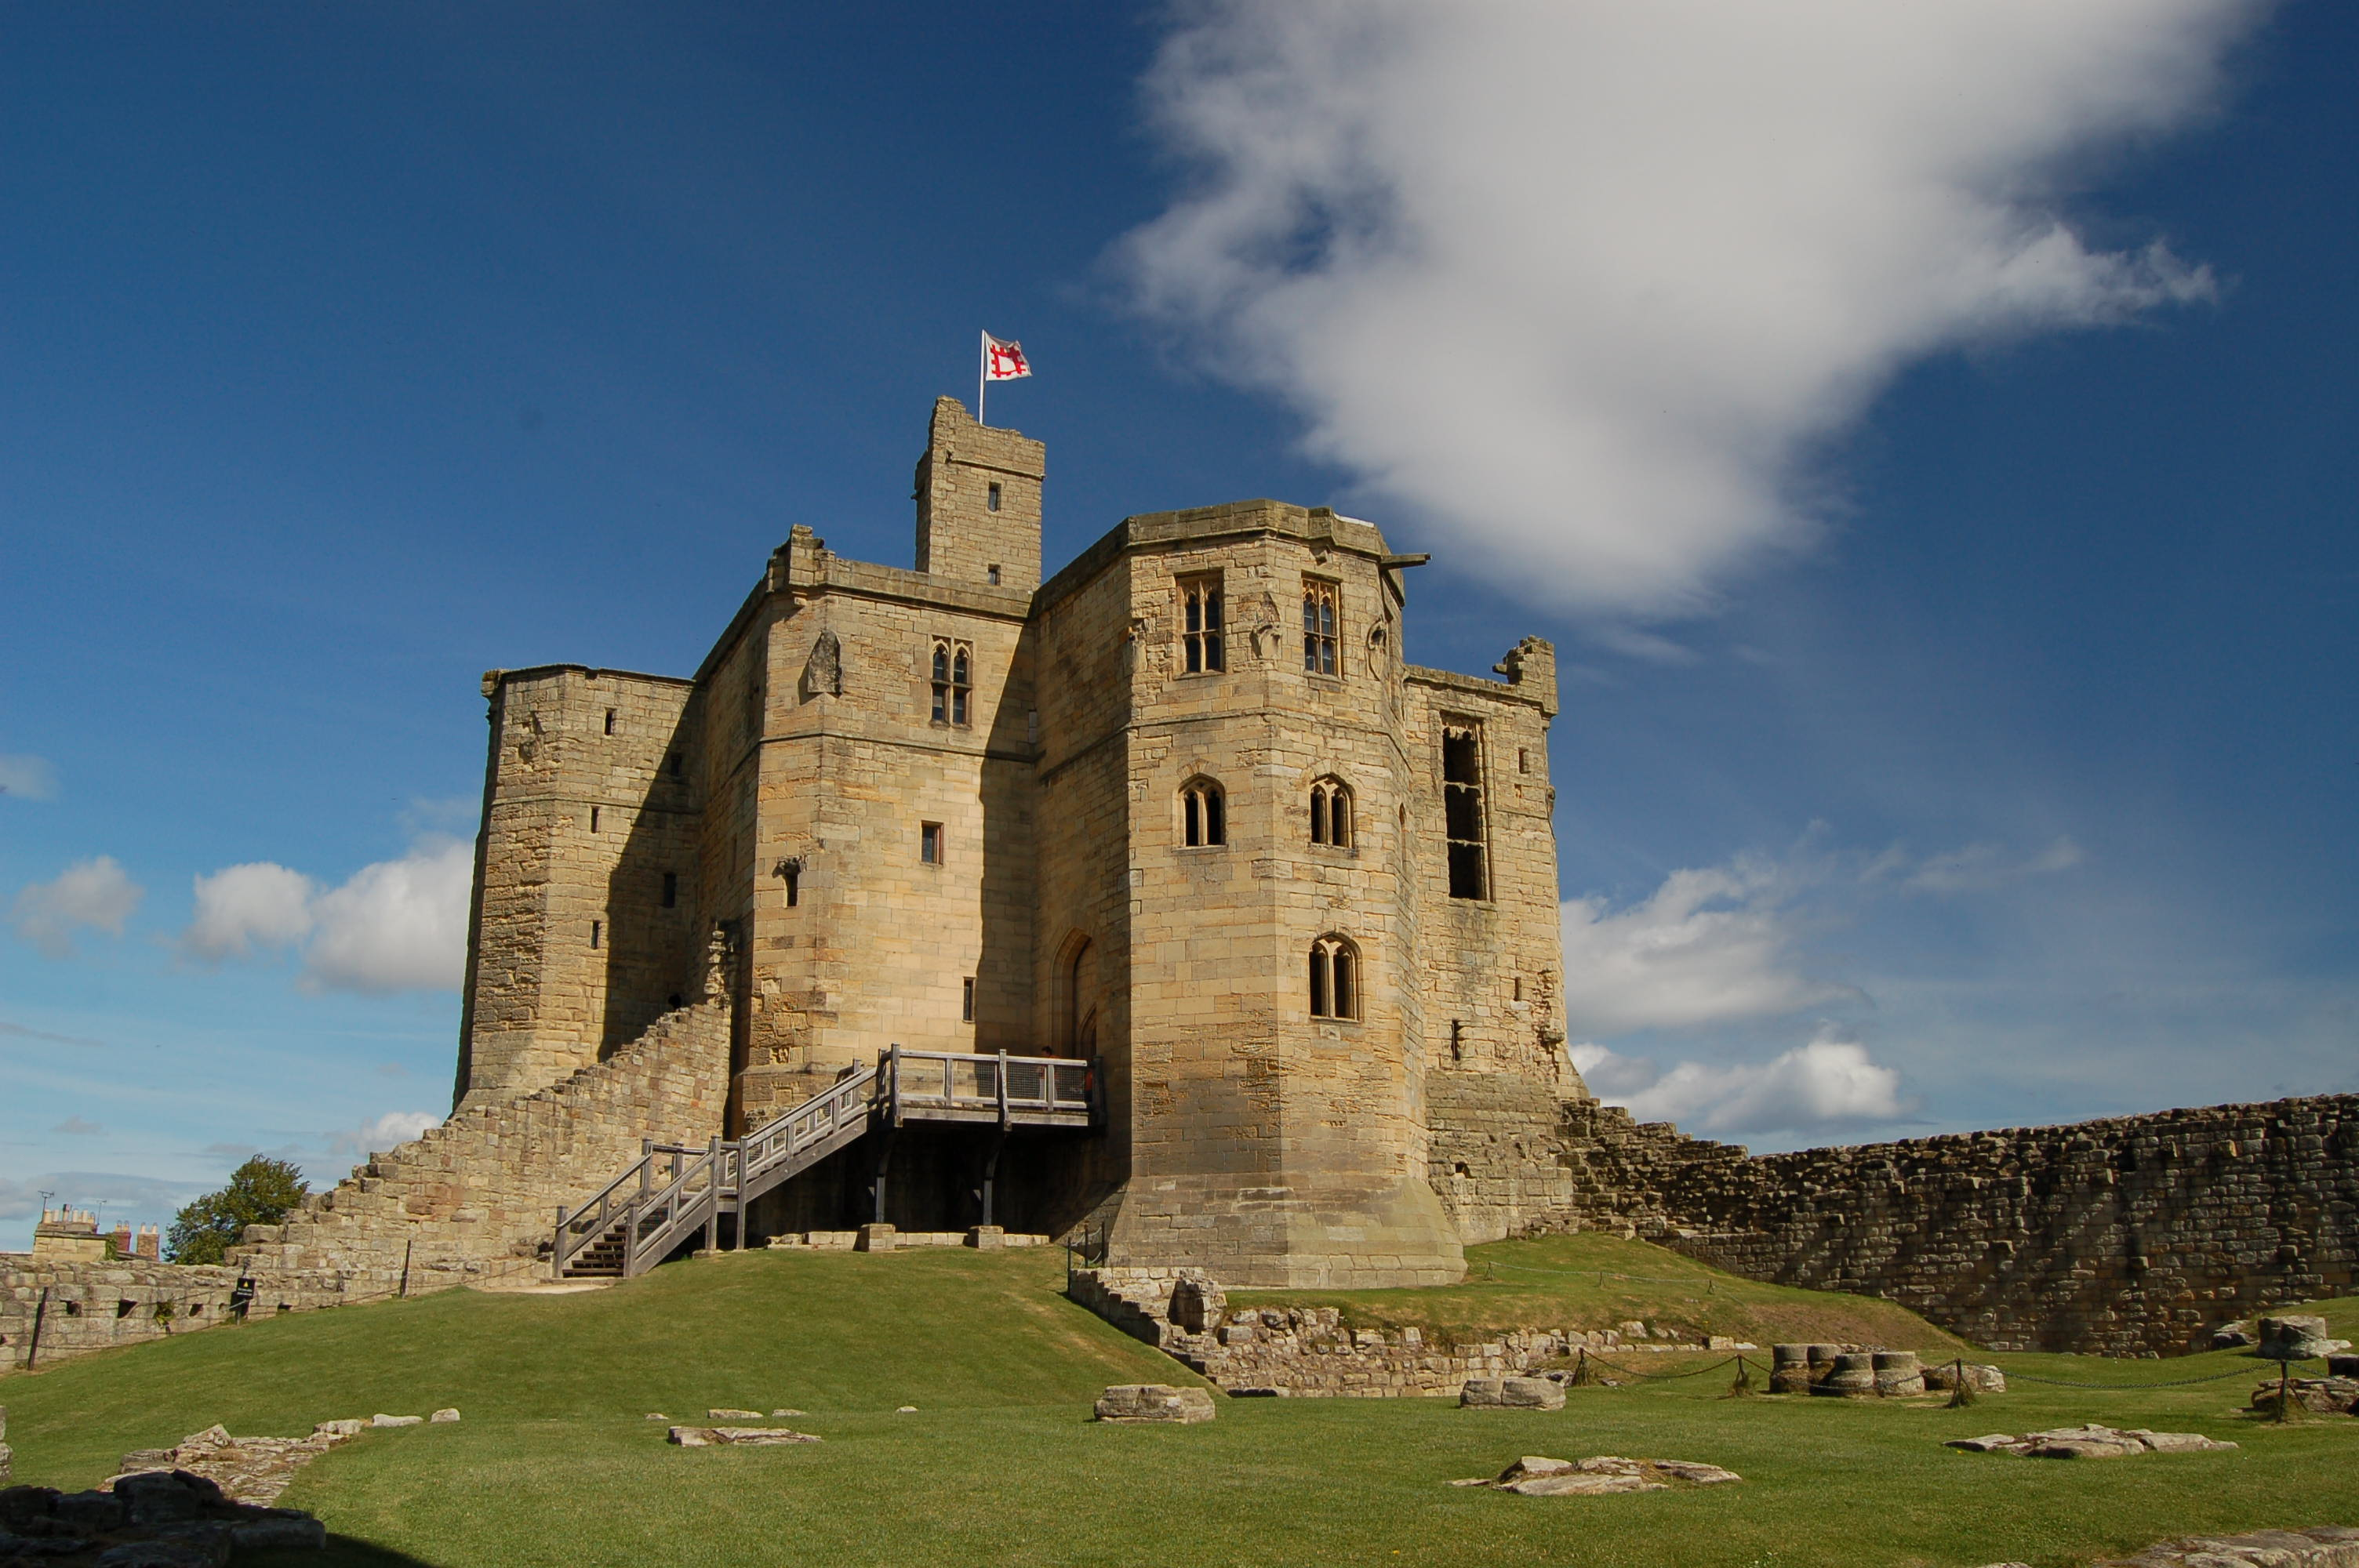 Warkworth Castle Wikipedia Early Row Wiring Diagram Defender Source A Tall Tower Stands Above The Ruined Wooden Staircase Leads Into